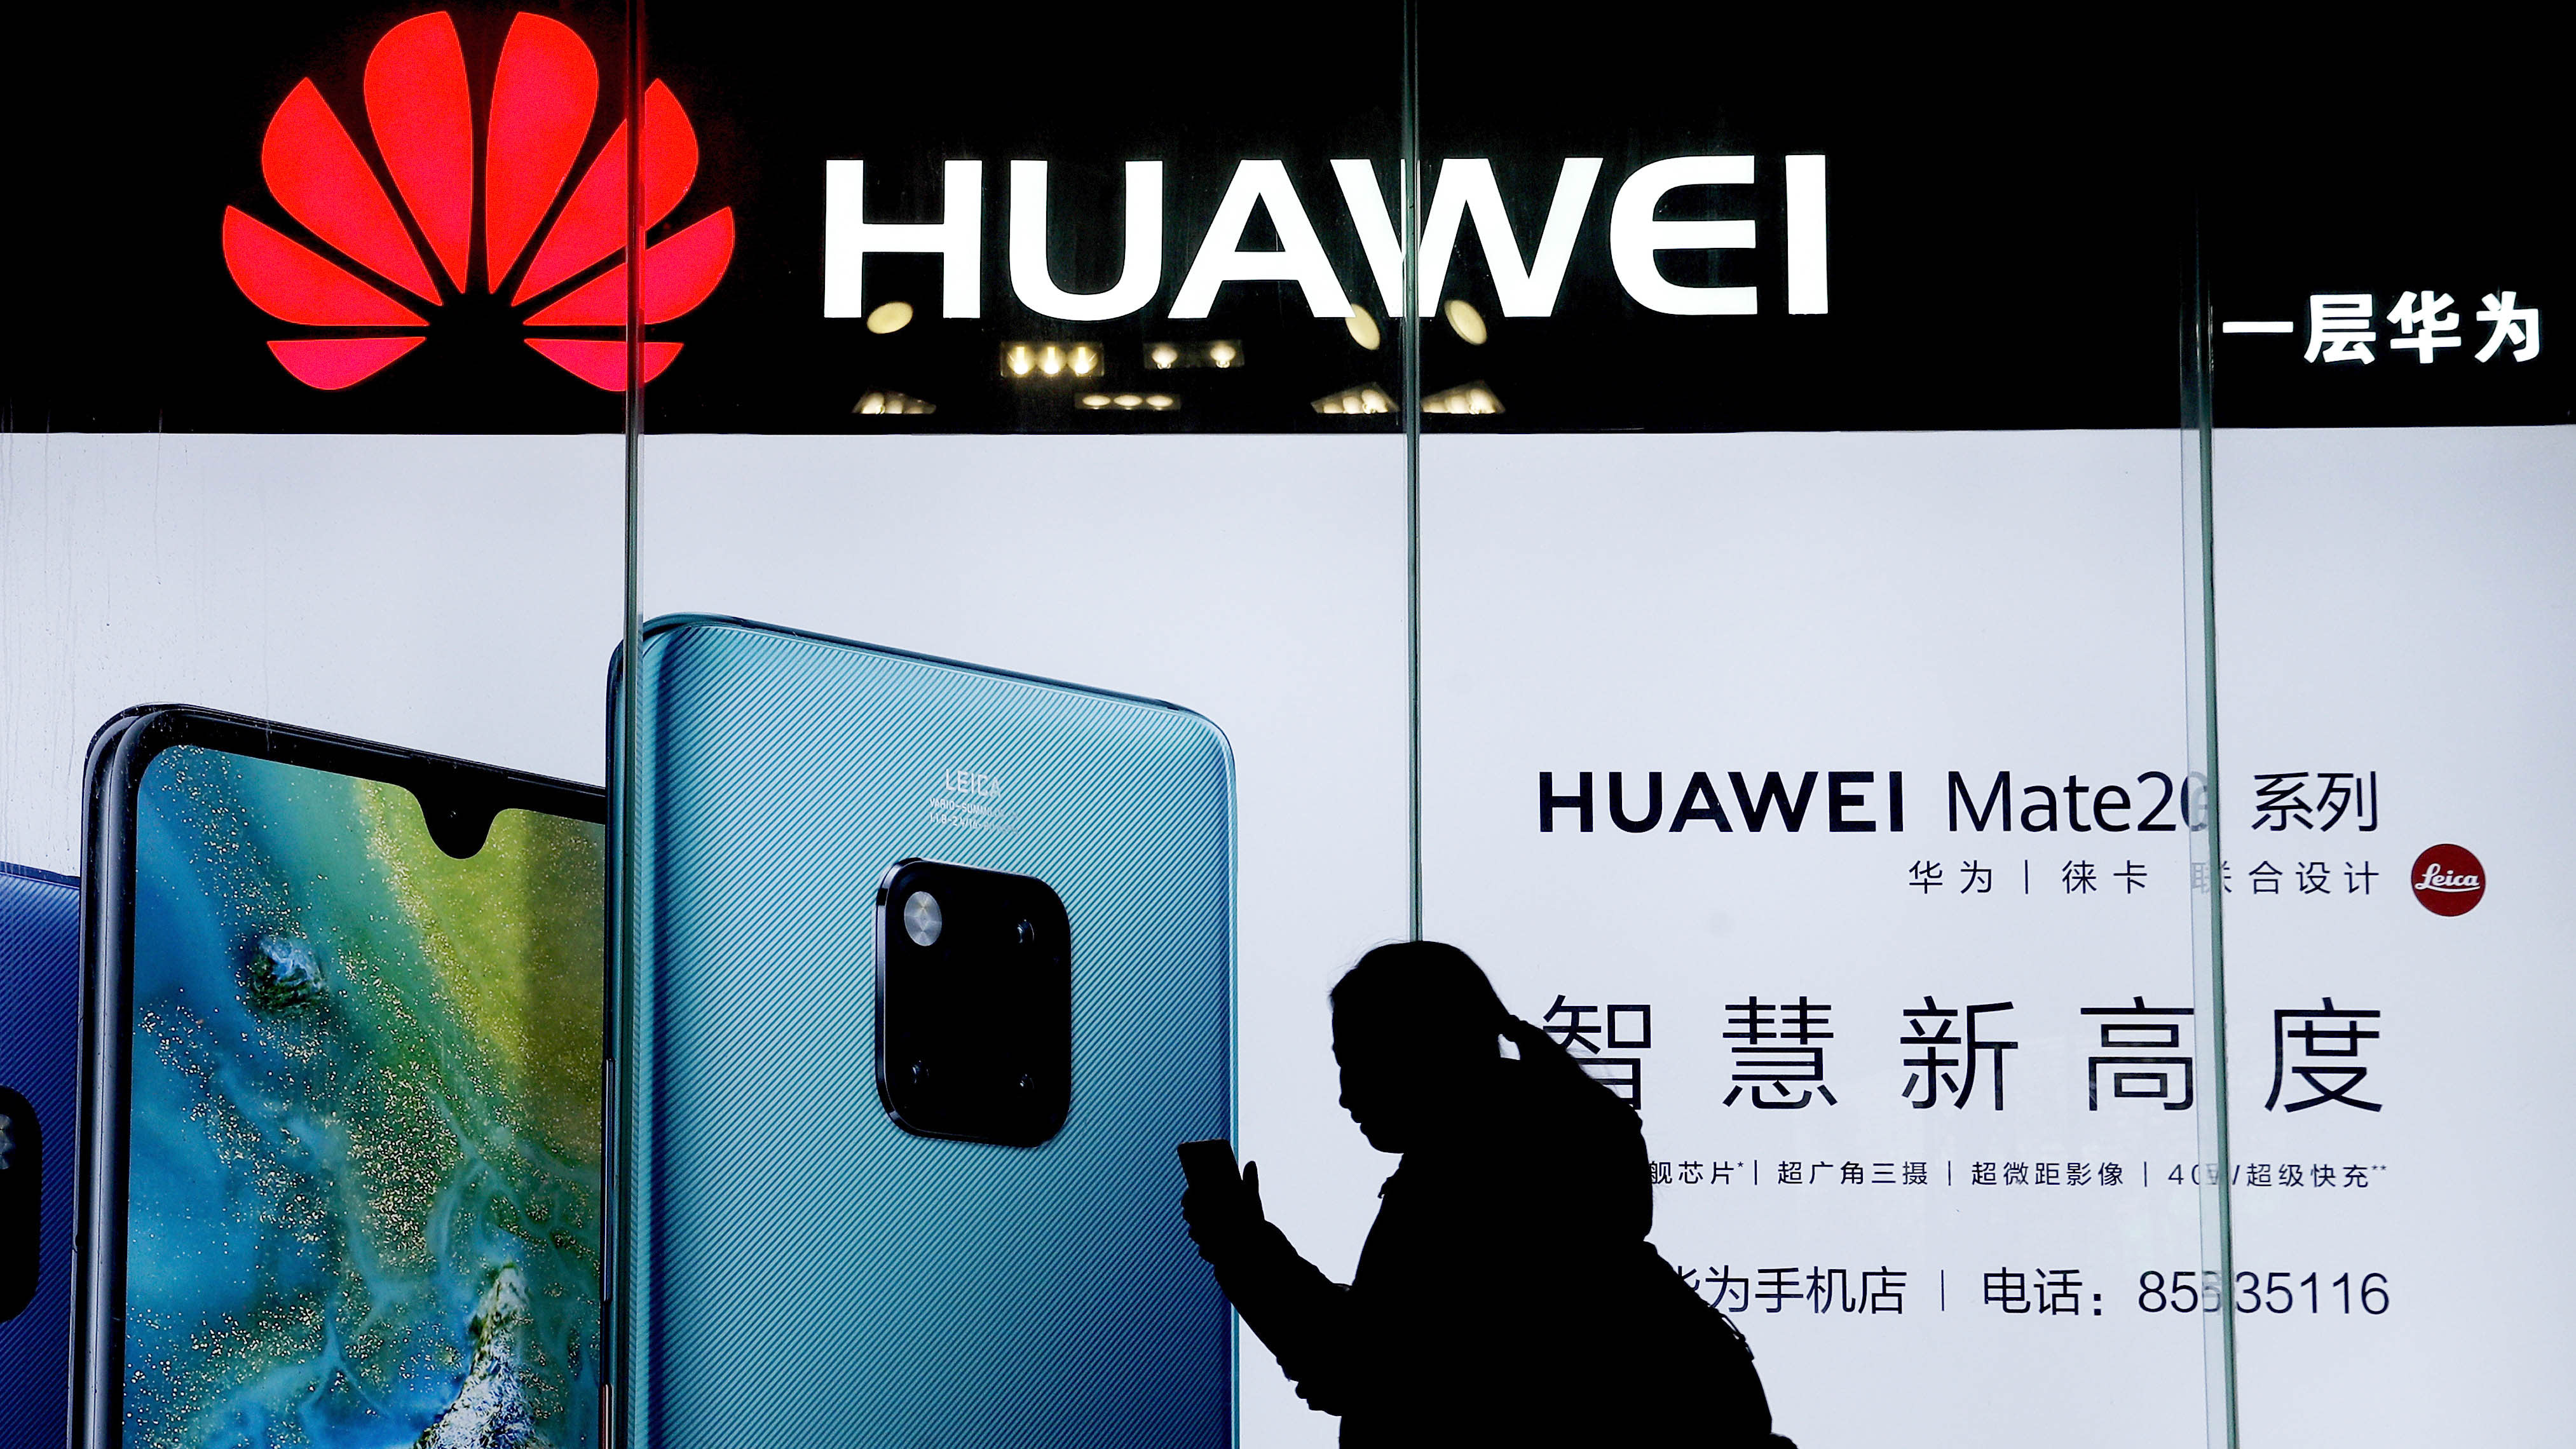 In the 31 years since its founding, Huawei has grownto become the world's largest telecommunications equipment provider. (Photo courtesy of Huawei)